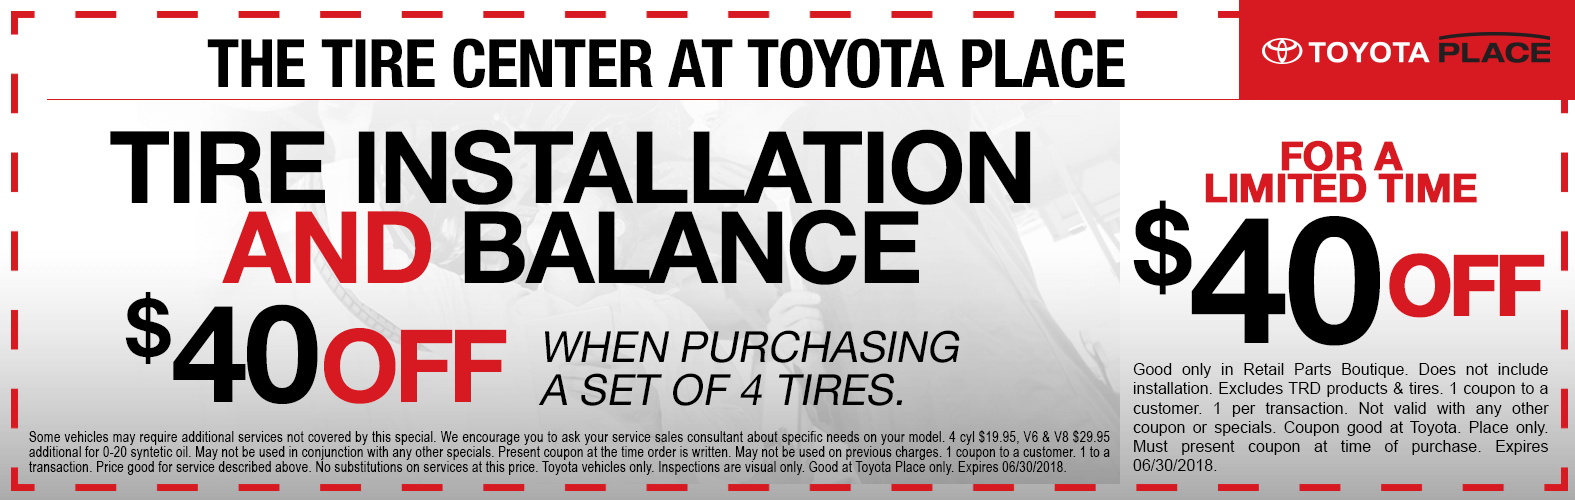 Tire Installation and Balance Special